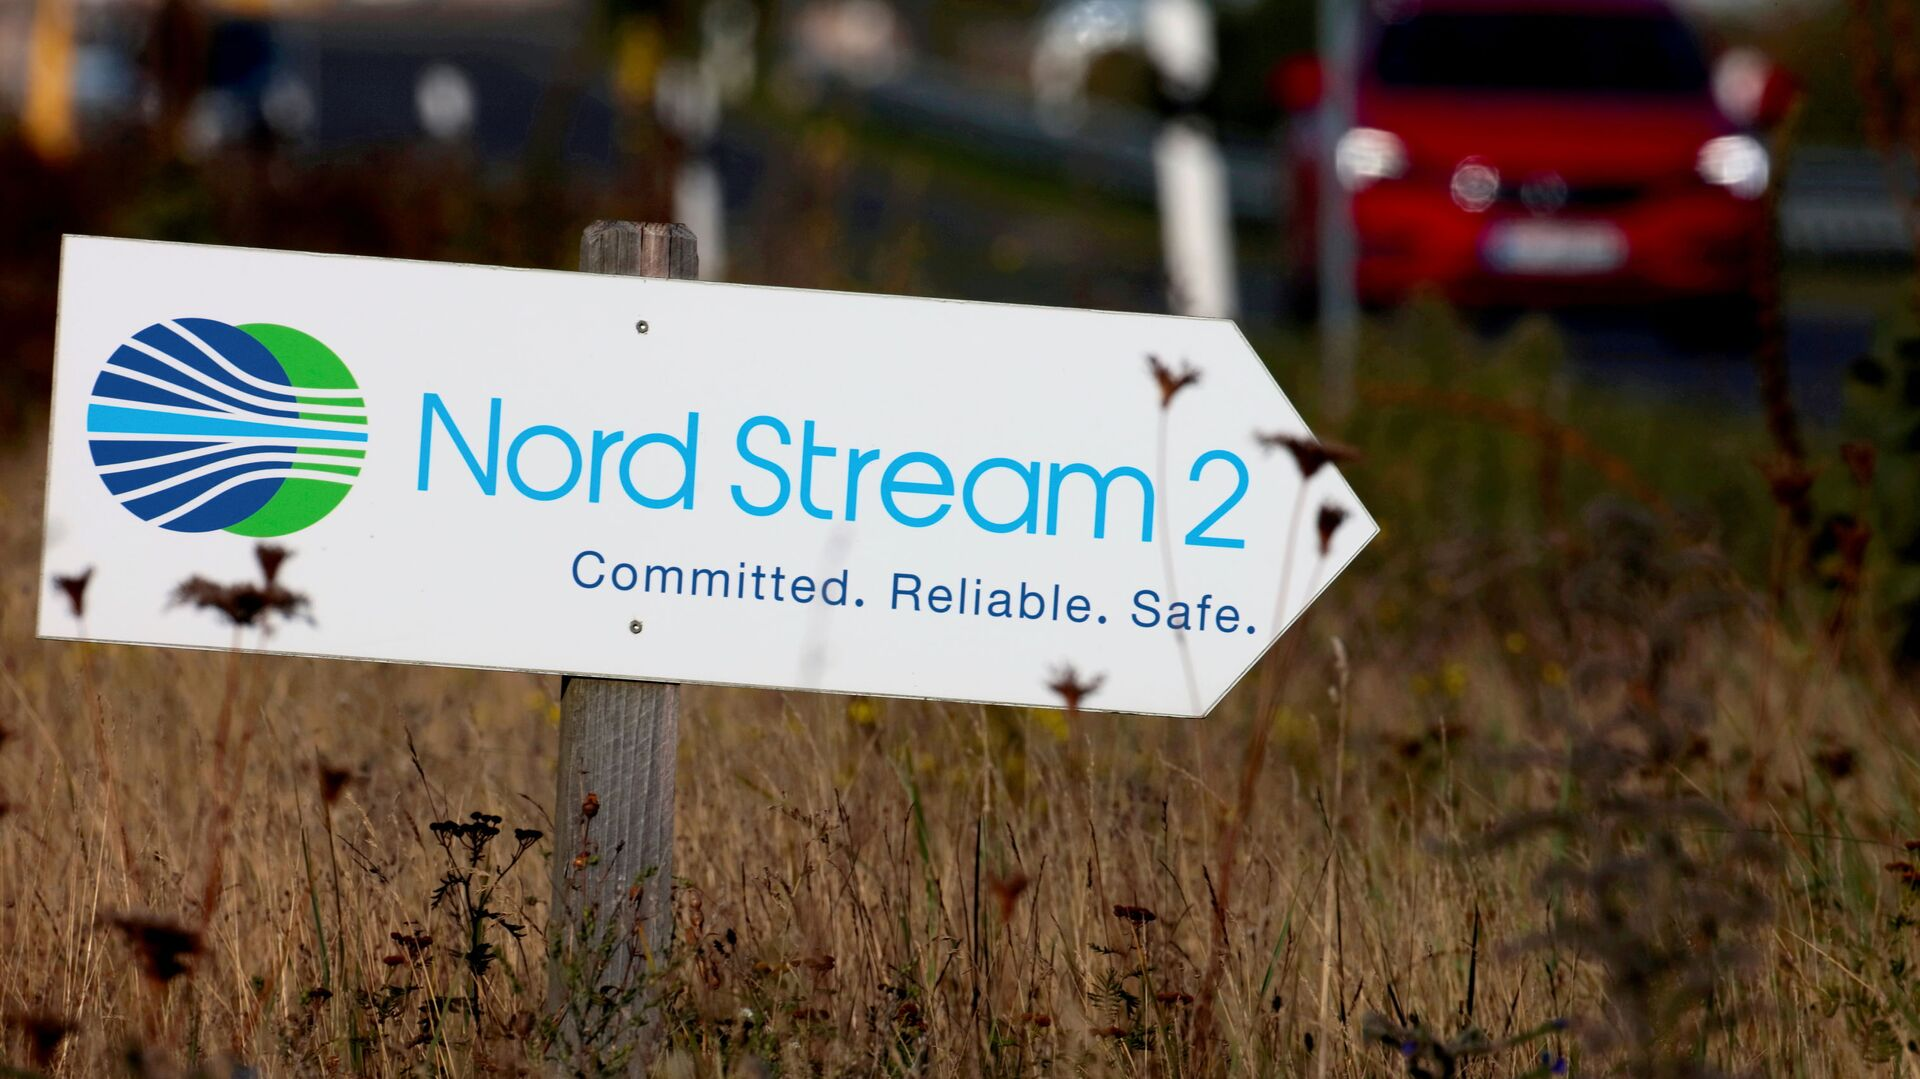 A road sign directs traffic towards the Nord Stream 2 gas line landfall facility entrance in Lubmin, Germany, September 10, 2020.  - Sputnik International, 1920, 14.10.2021